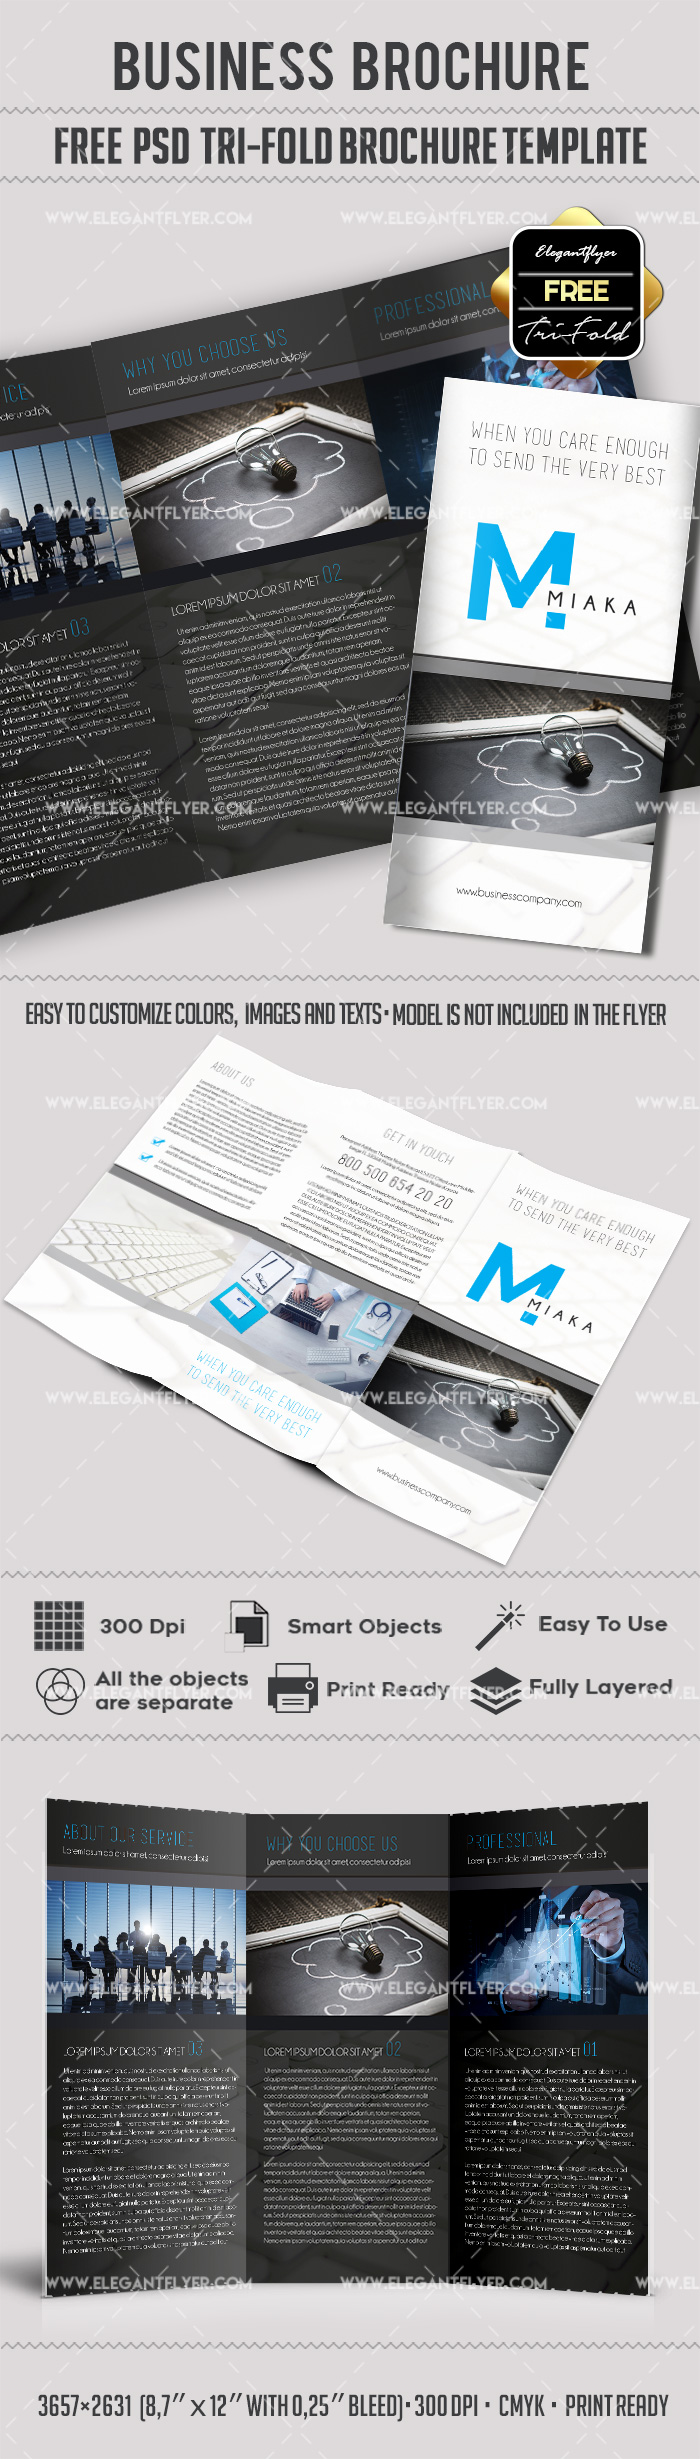 Tri fold brochure templates free download by elegantflyer for Free tri fold brochure template download